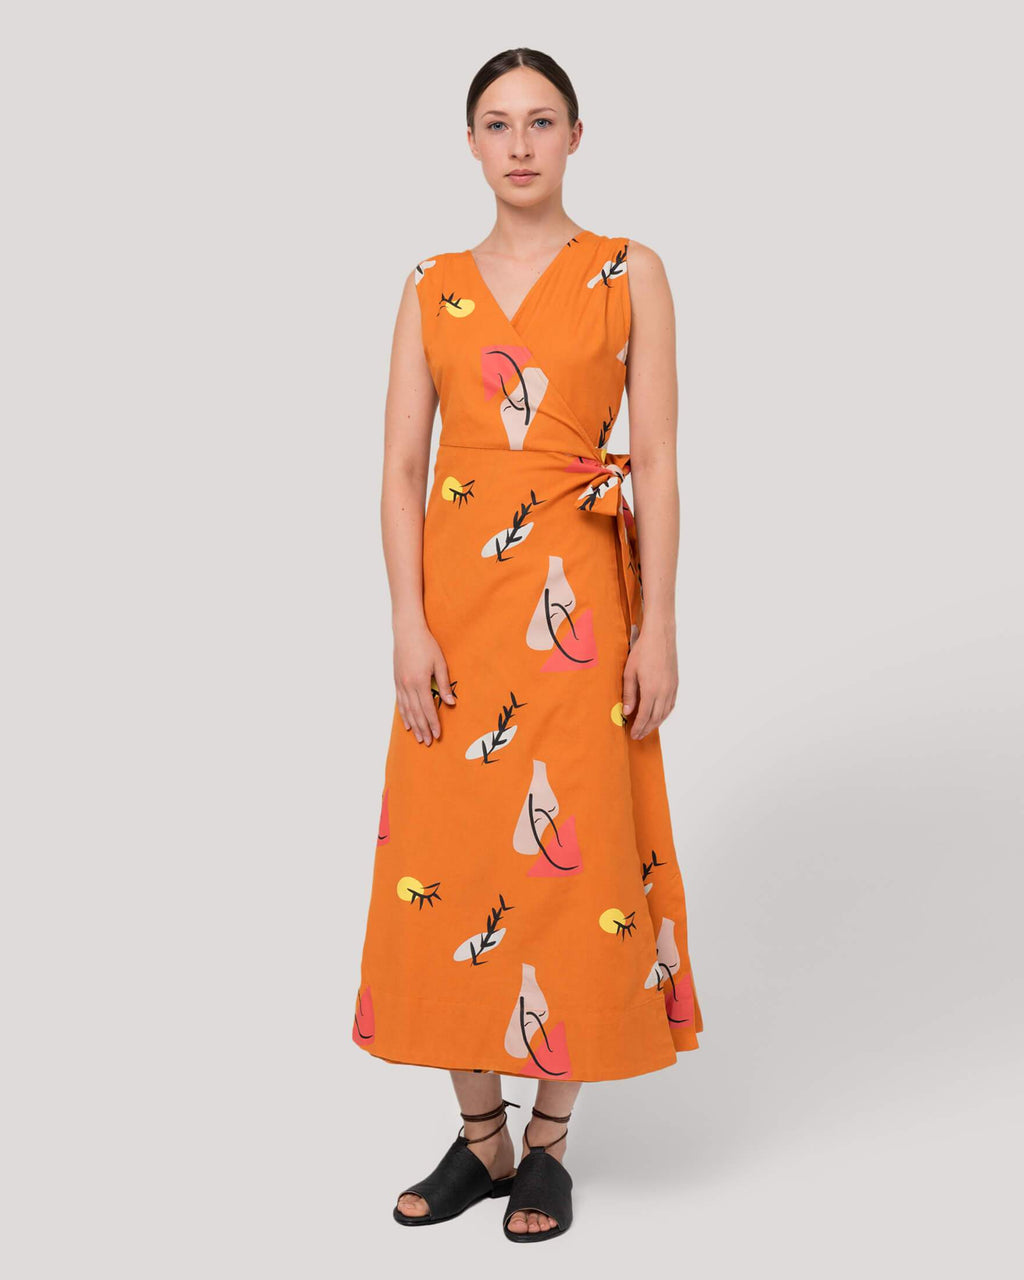 variant_1 | EN Orange Dress with Print Summer Women Suite13 | DE Orangenes Kleid Lang mit Print Damen Suite13